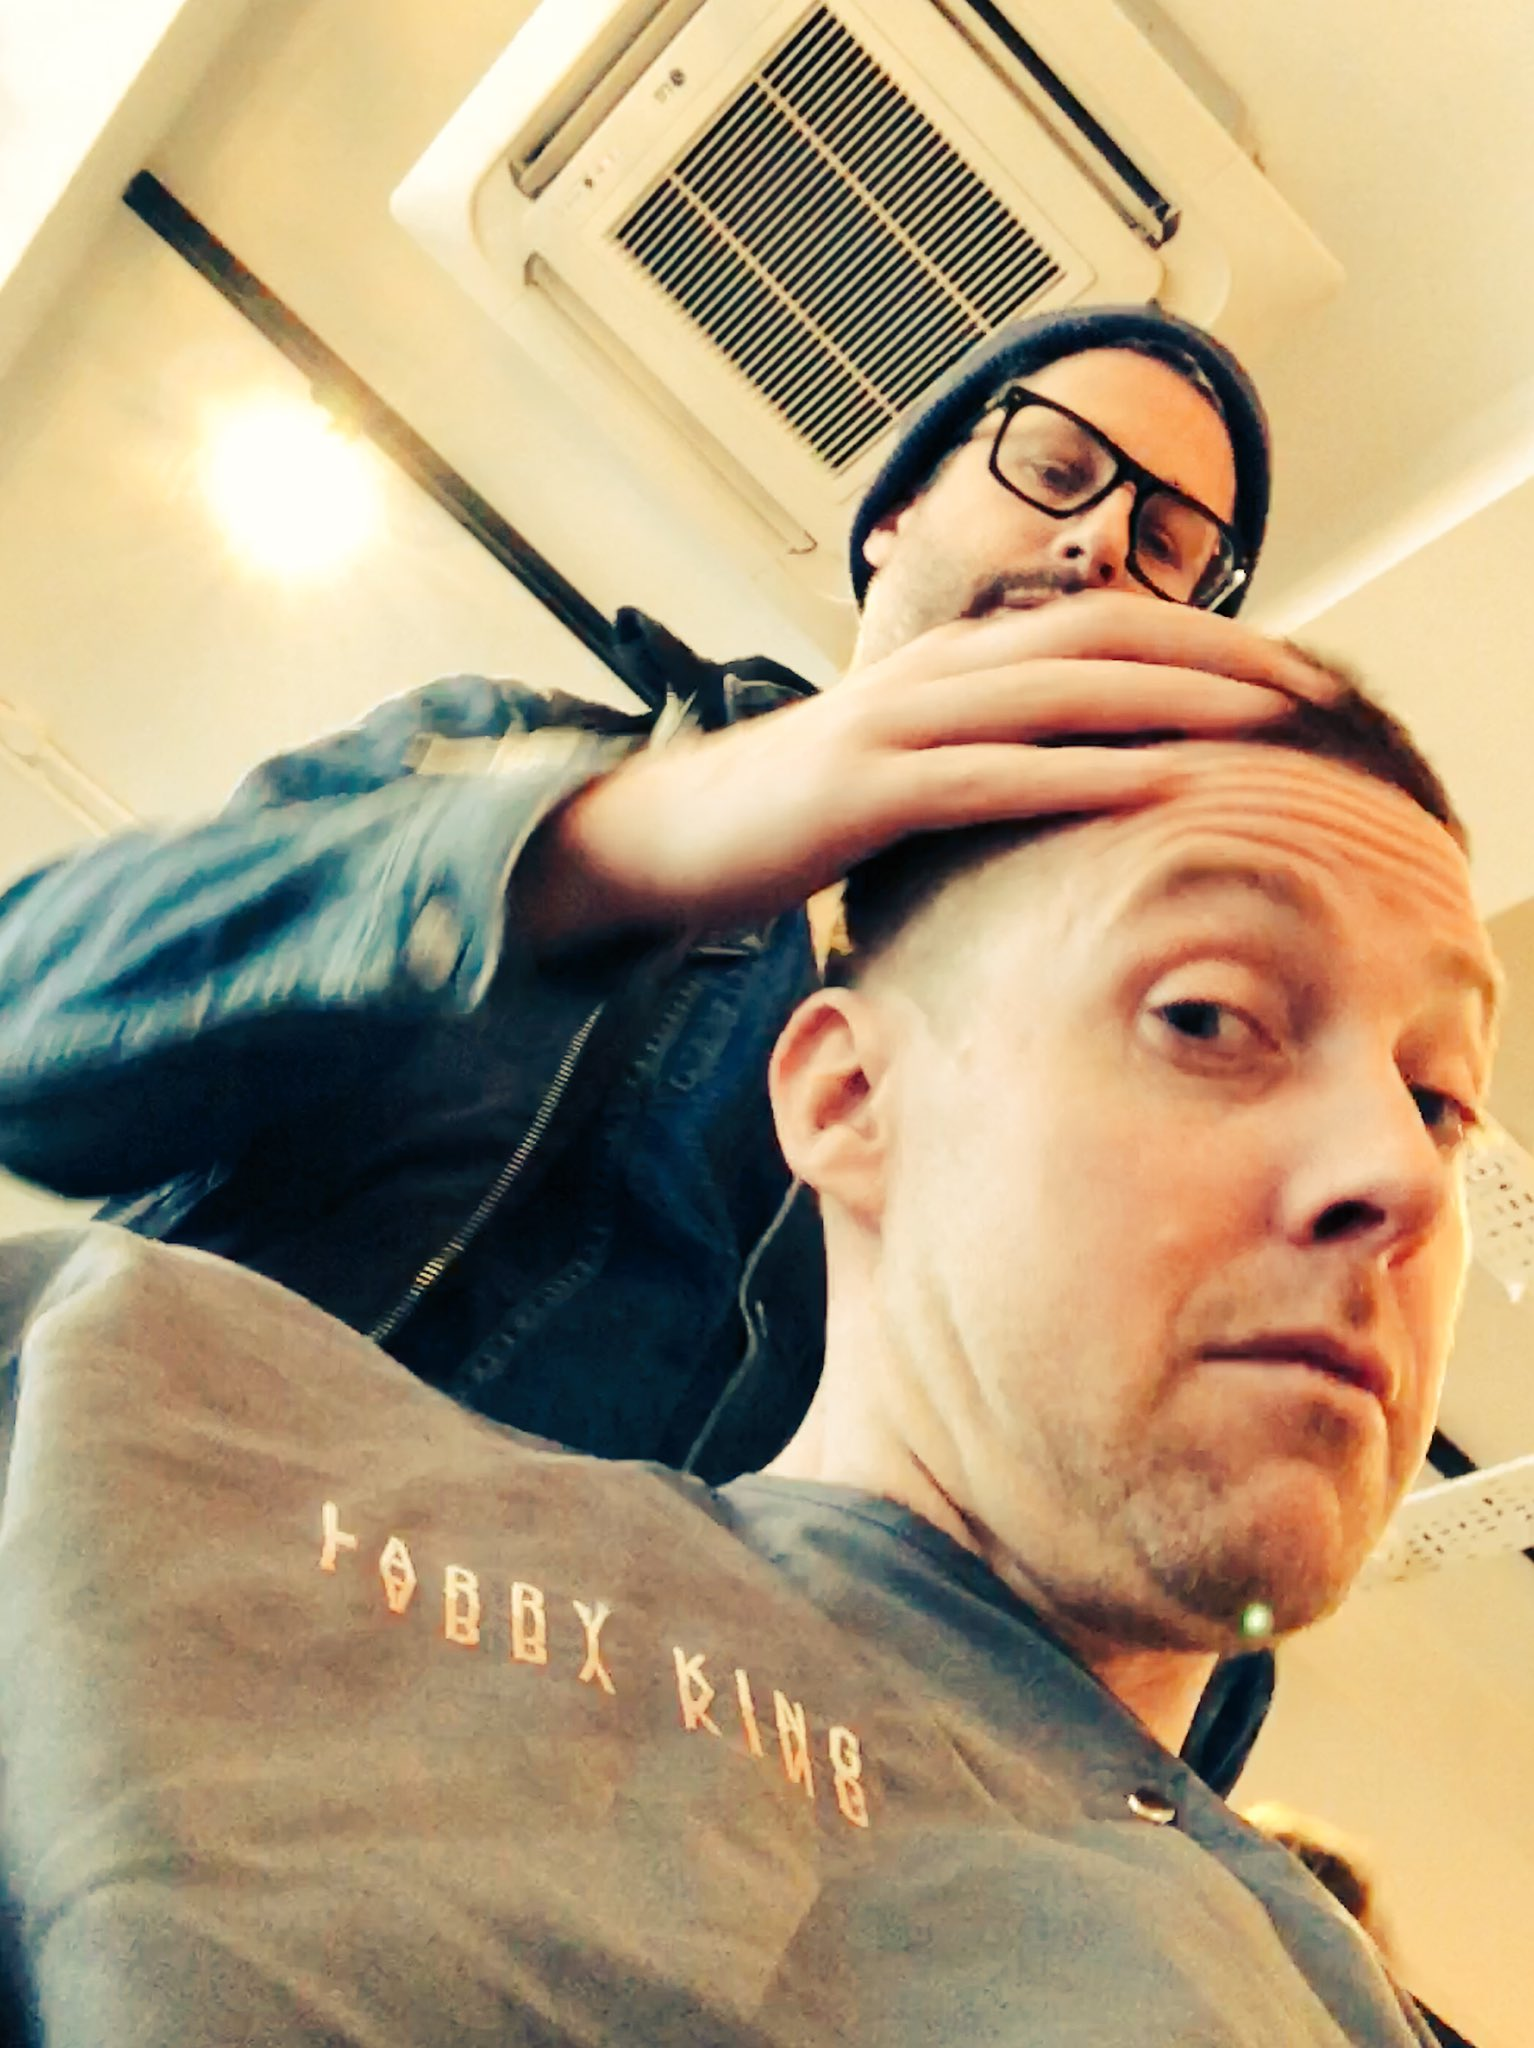 Getting me hair cut by @king_larryking for tonight's BIG performance. https://t.co/xpKysBEzeV